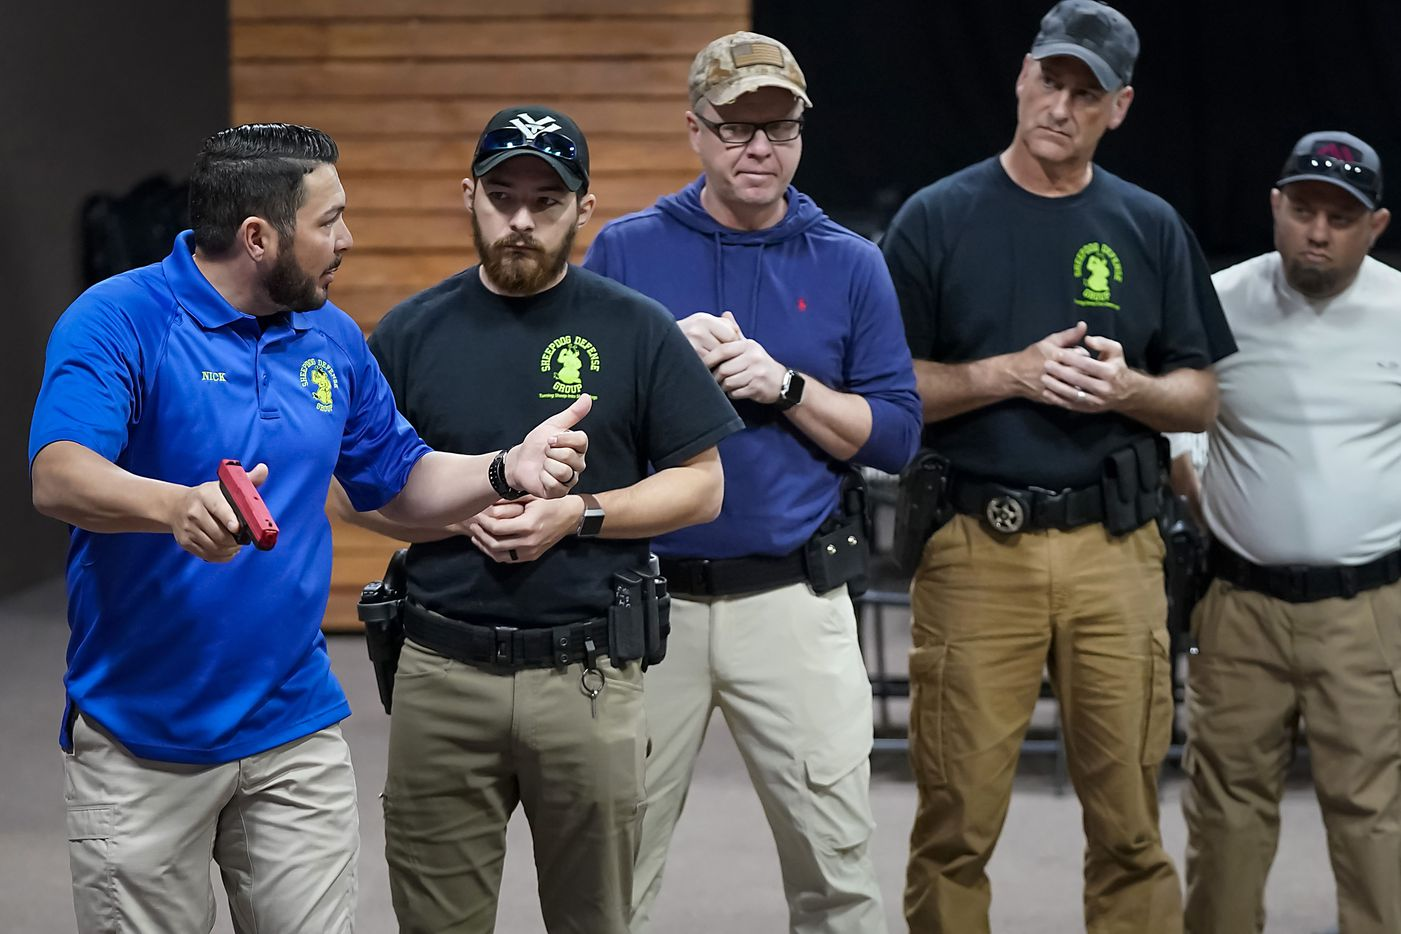 Instructor Nick Guadarama (left) demonstrates how to search and clear a room during a Sheepdog Defense Group armed security programs church safety training at Cornerstone Community Church on Sunday, Feb. 2, 2020 in Springtown, Texas.